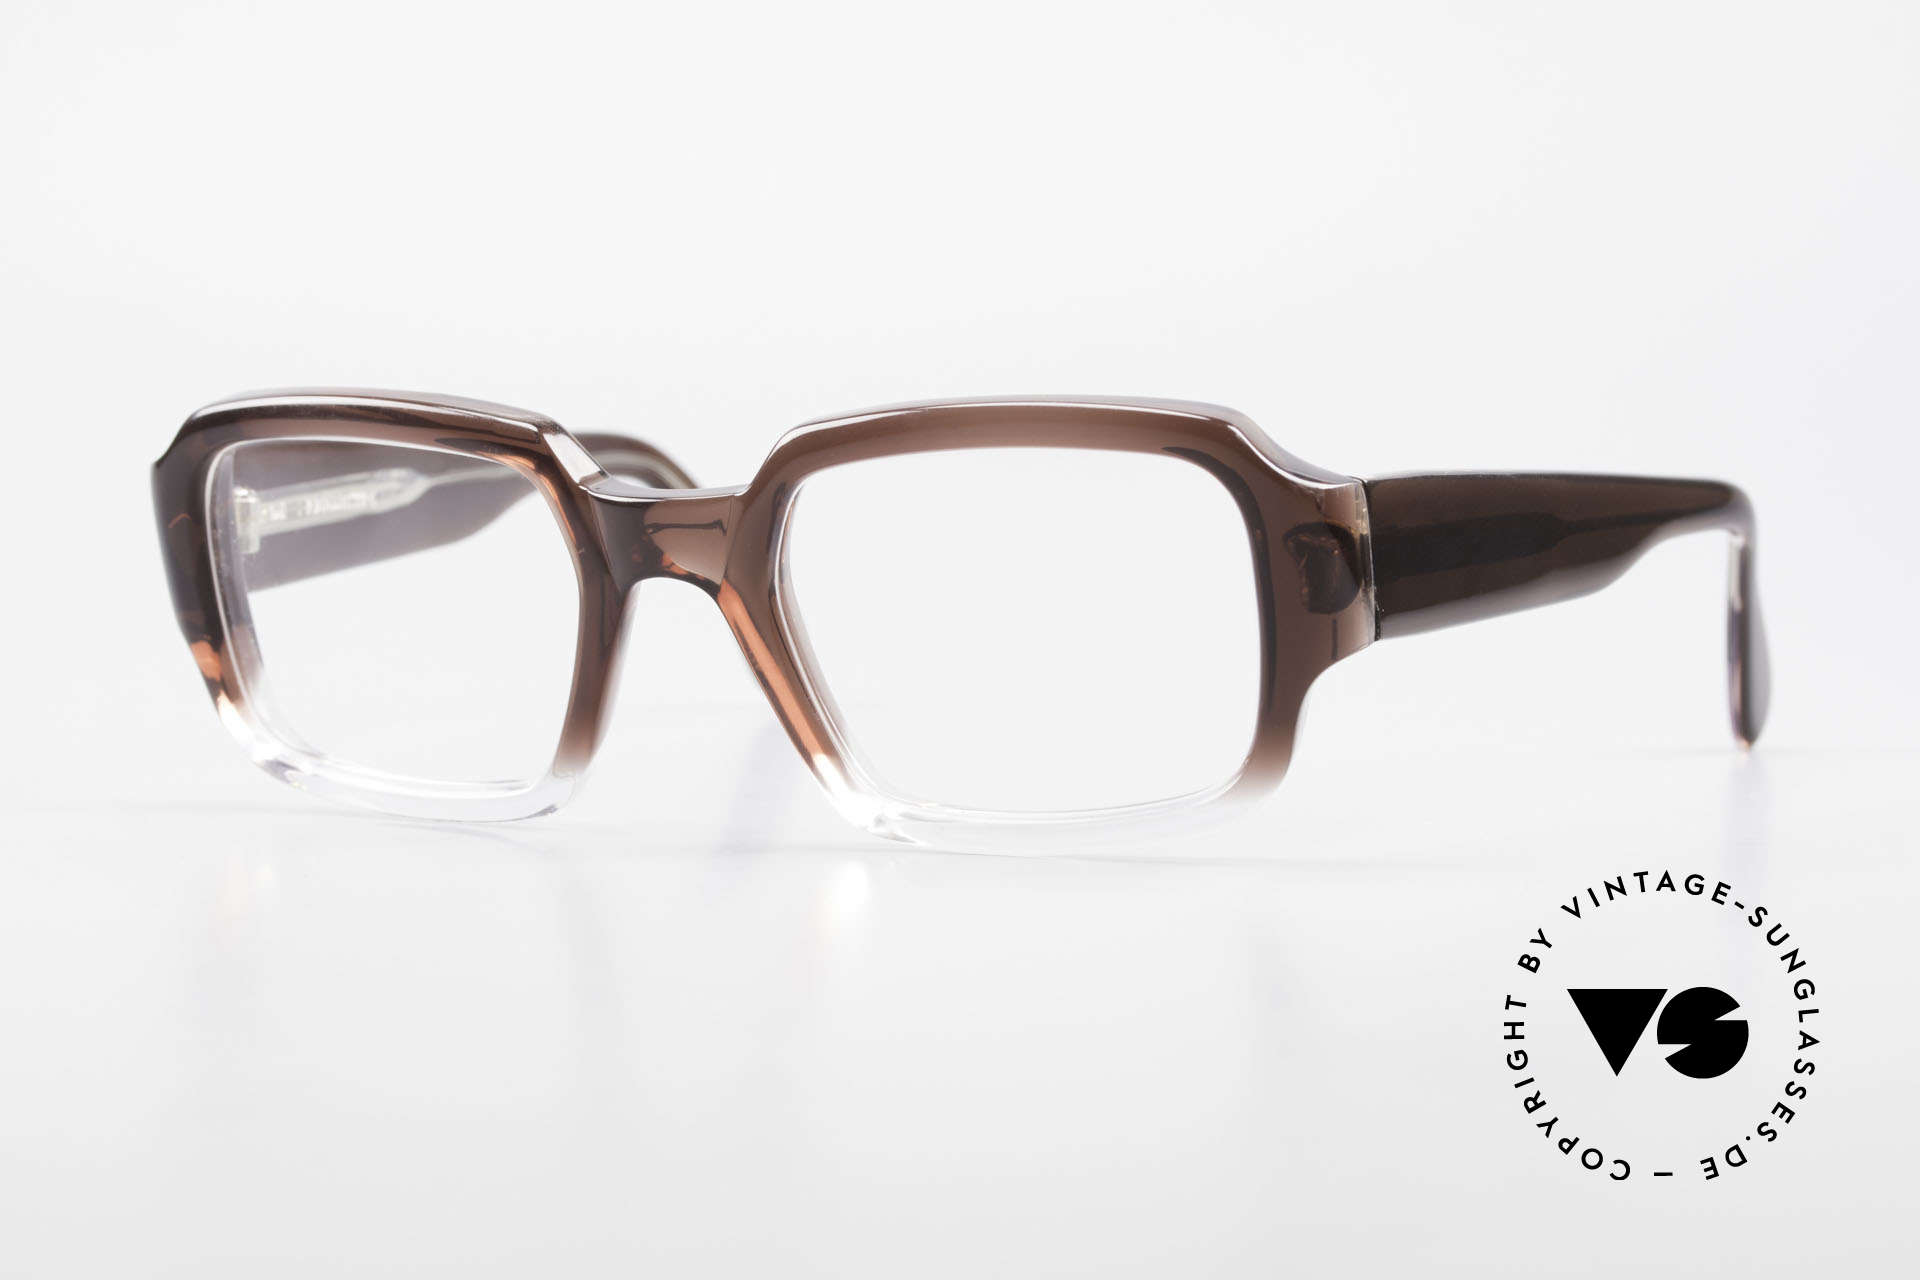 Metzler 4005 Old Original Marwitz Glasses, correct model name: MARWITZ 4005, 95, 62-22, 140, Made for Men